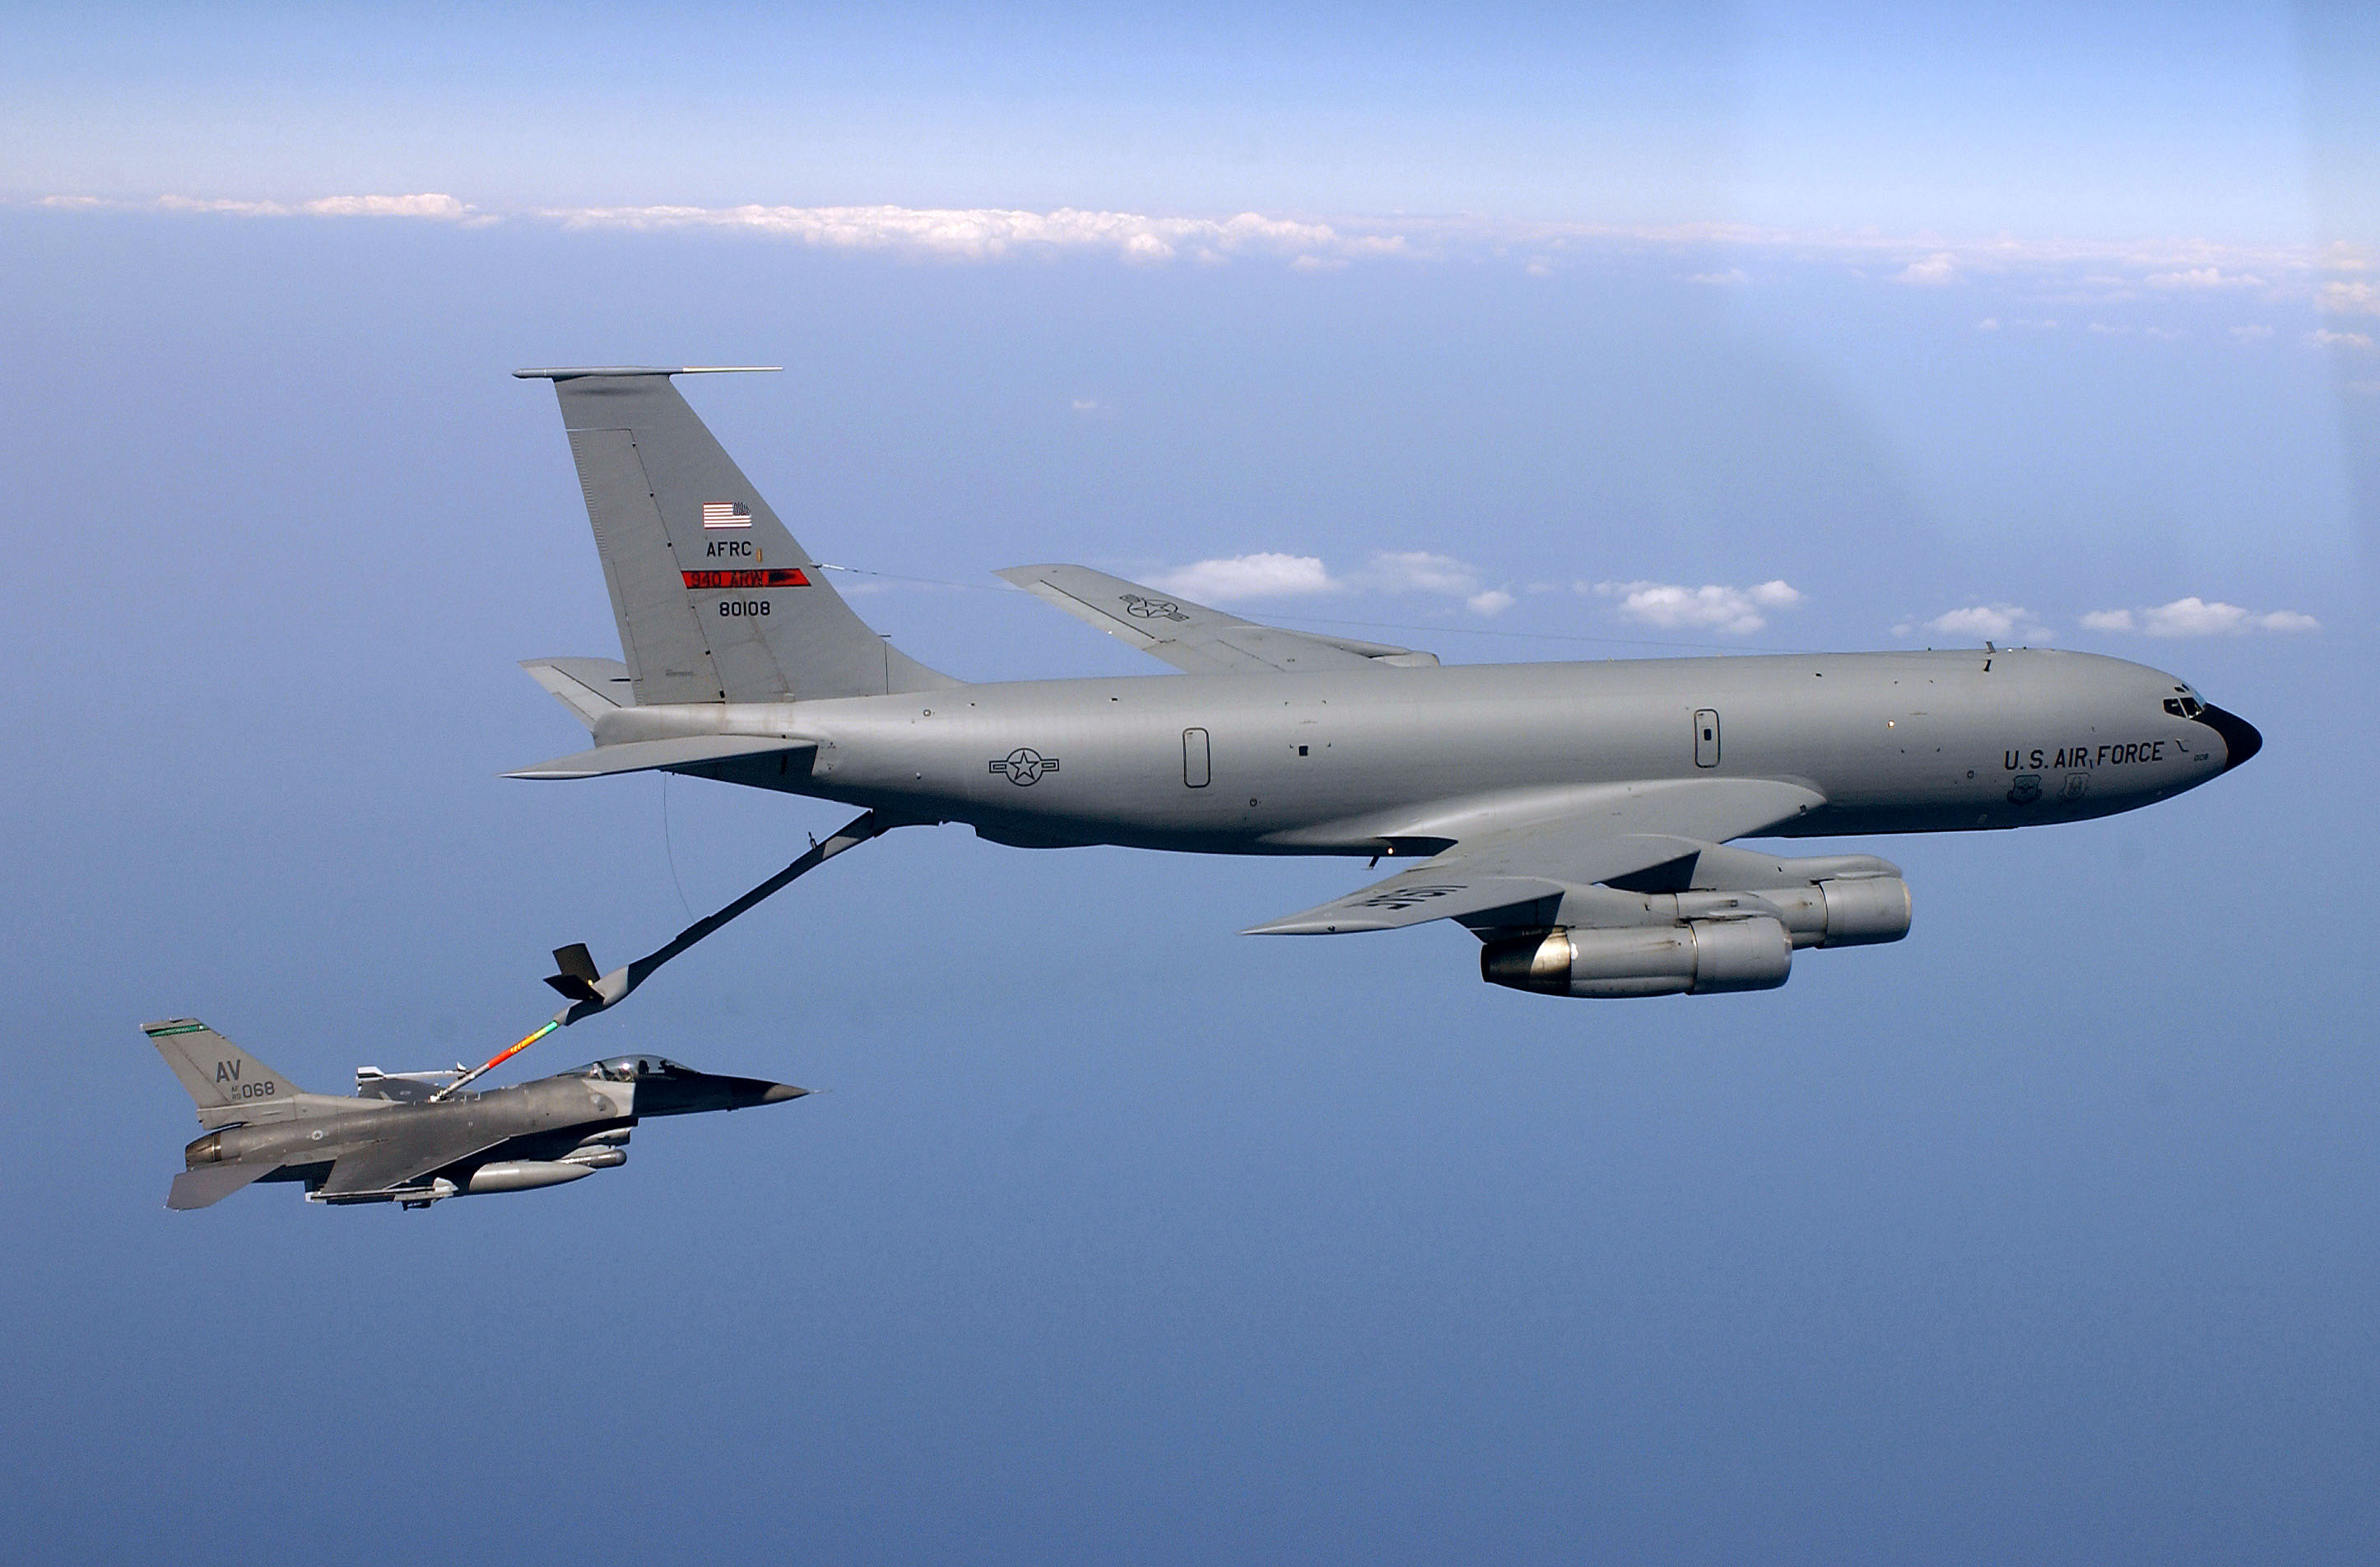 https://upload.wikimedia.org/wikipedia/commons/f/f5/KC135_refueling.jpg